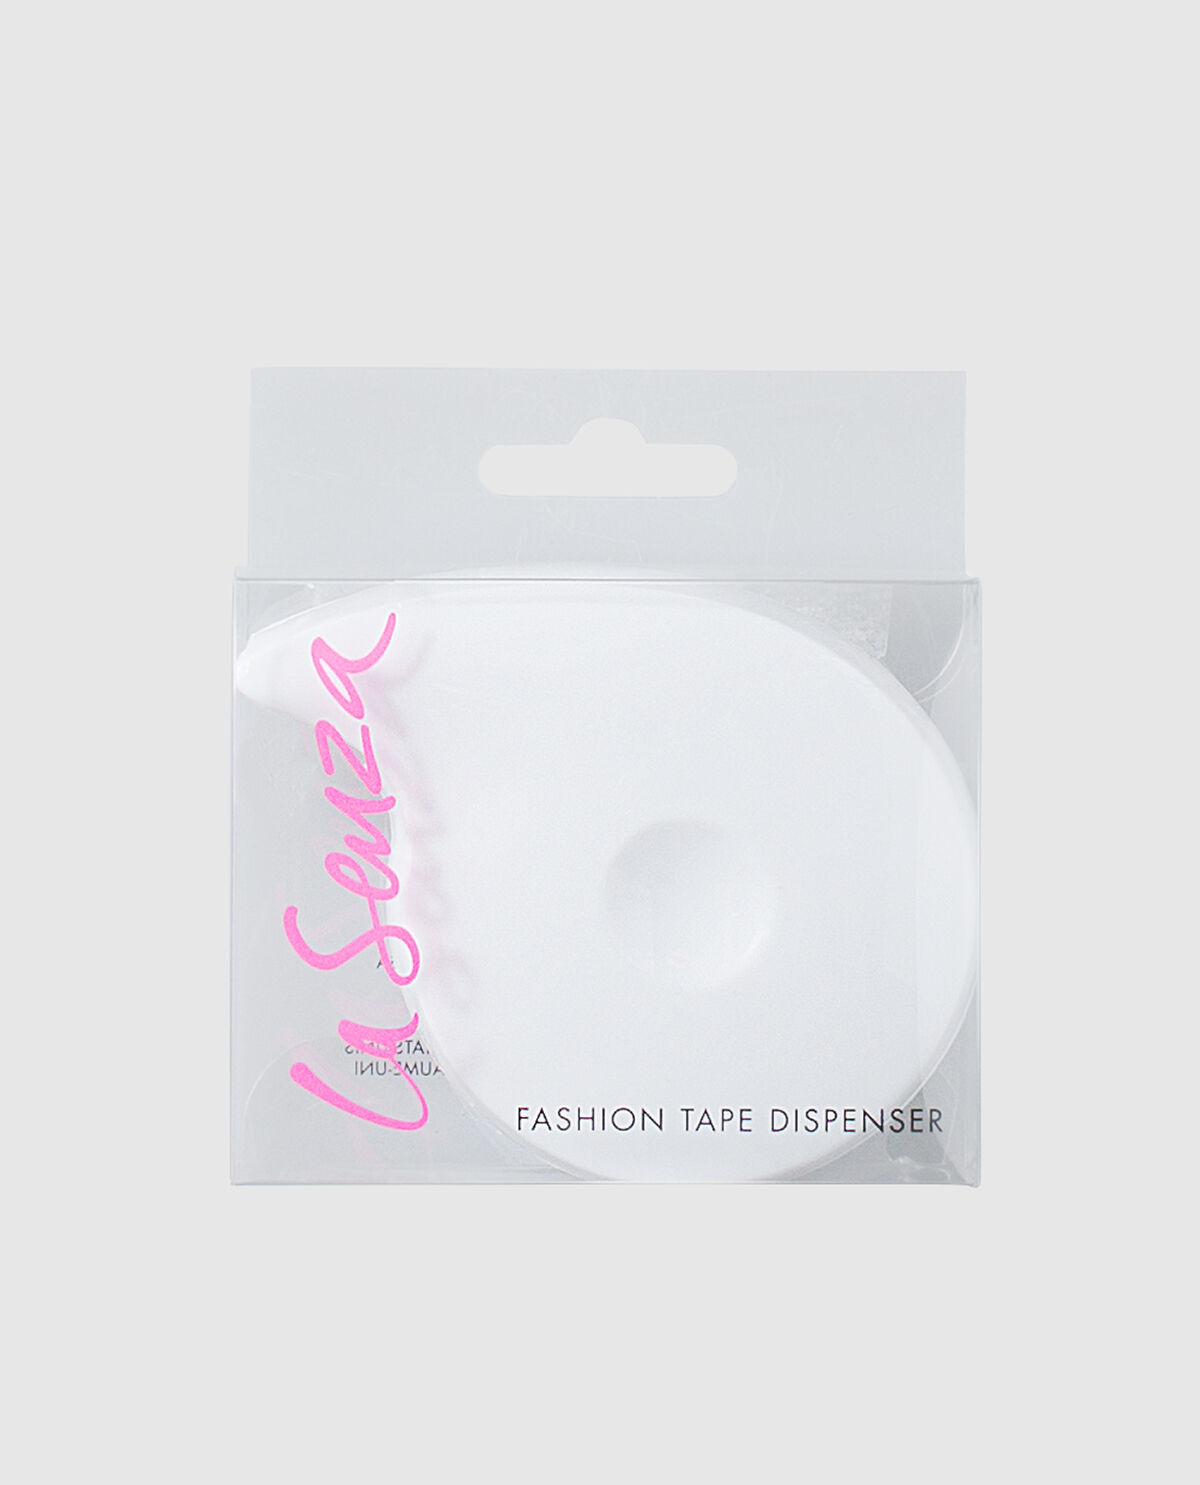 Fashion Tape Dispenser   La Senza Images  Fashion Tape Dispenser